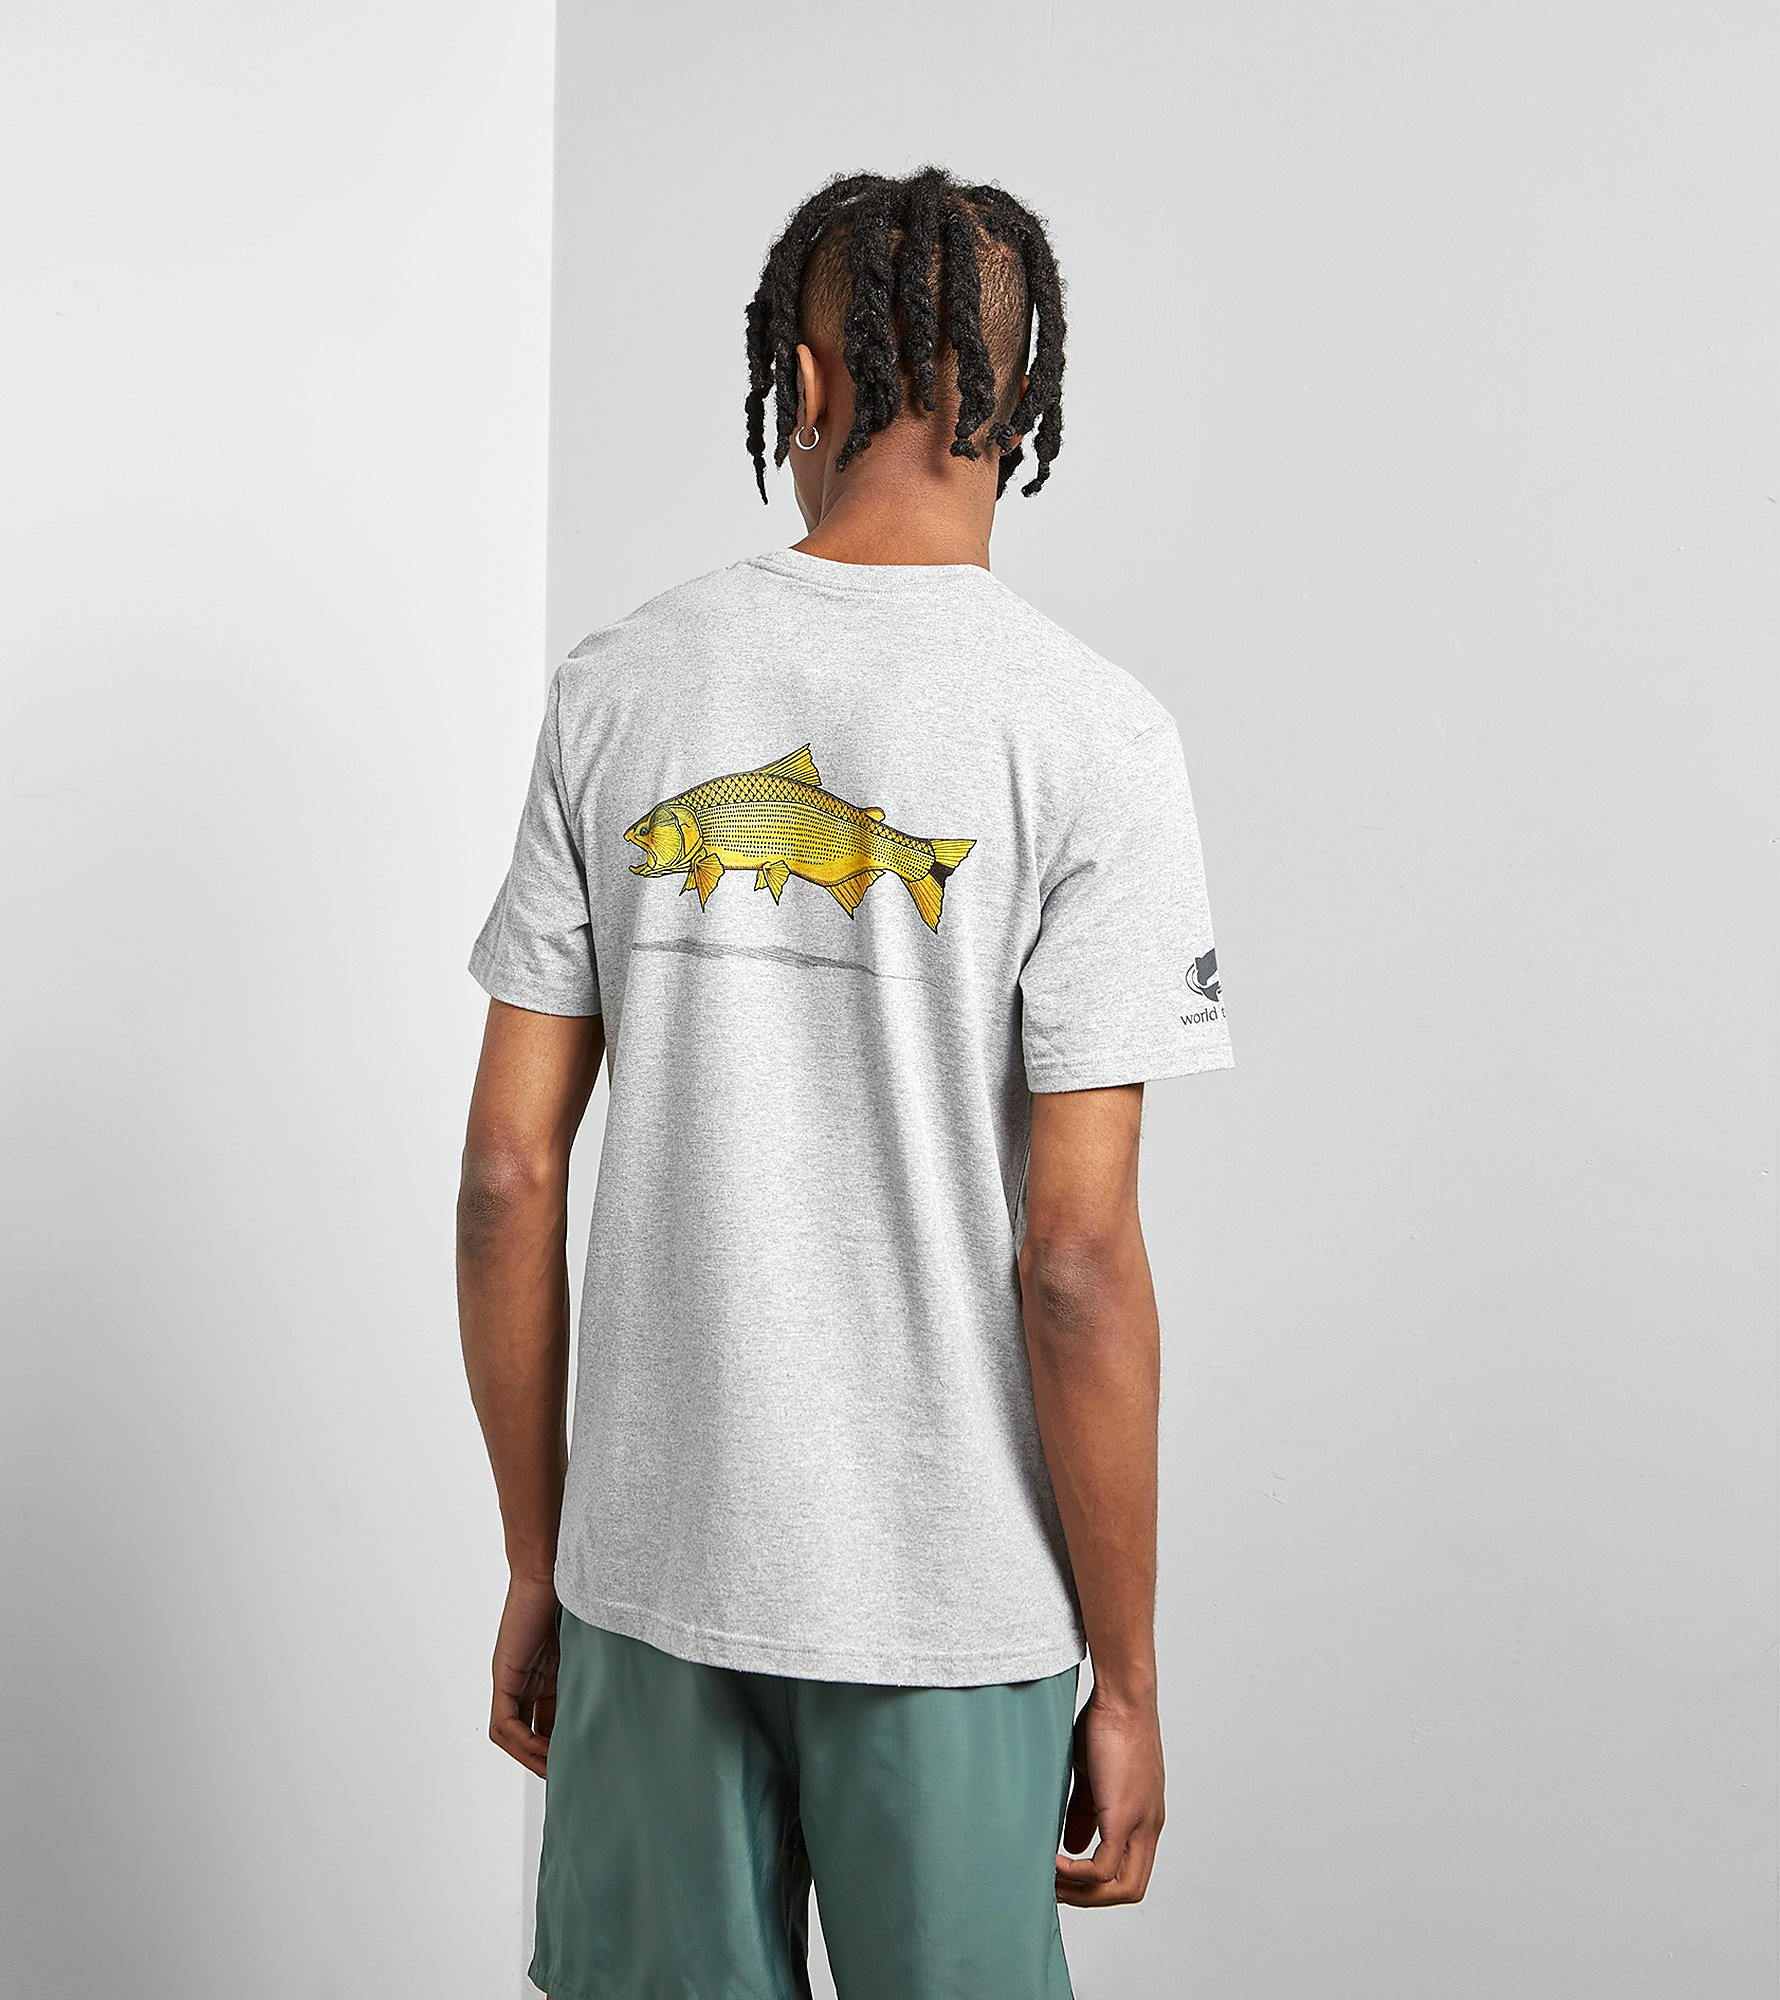 Patagonia World Trout T-Shirt